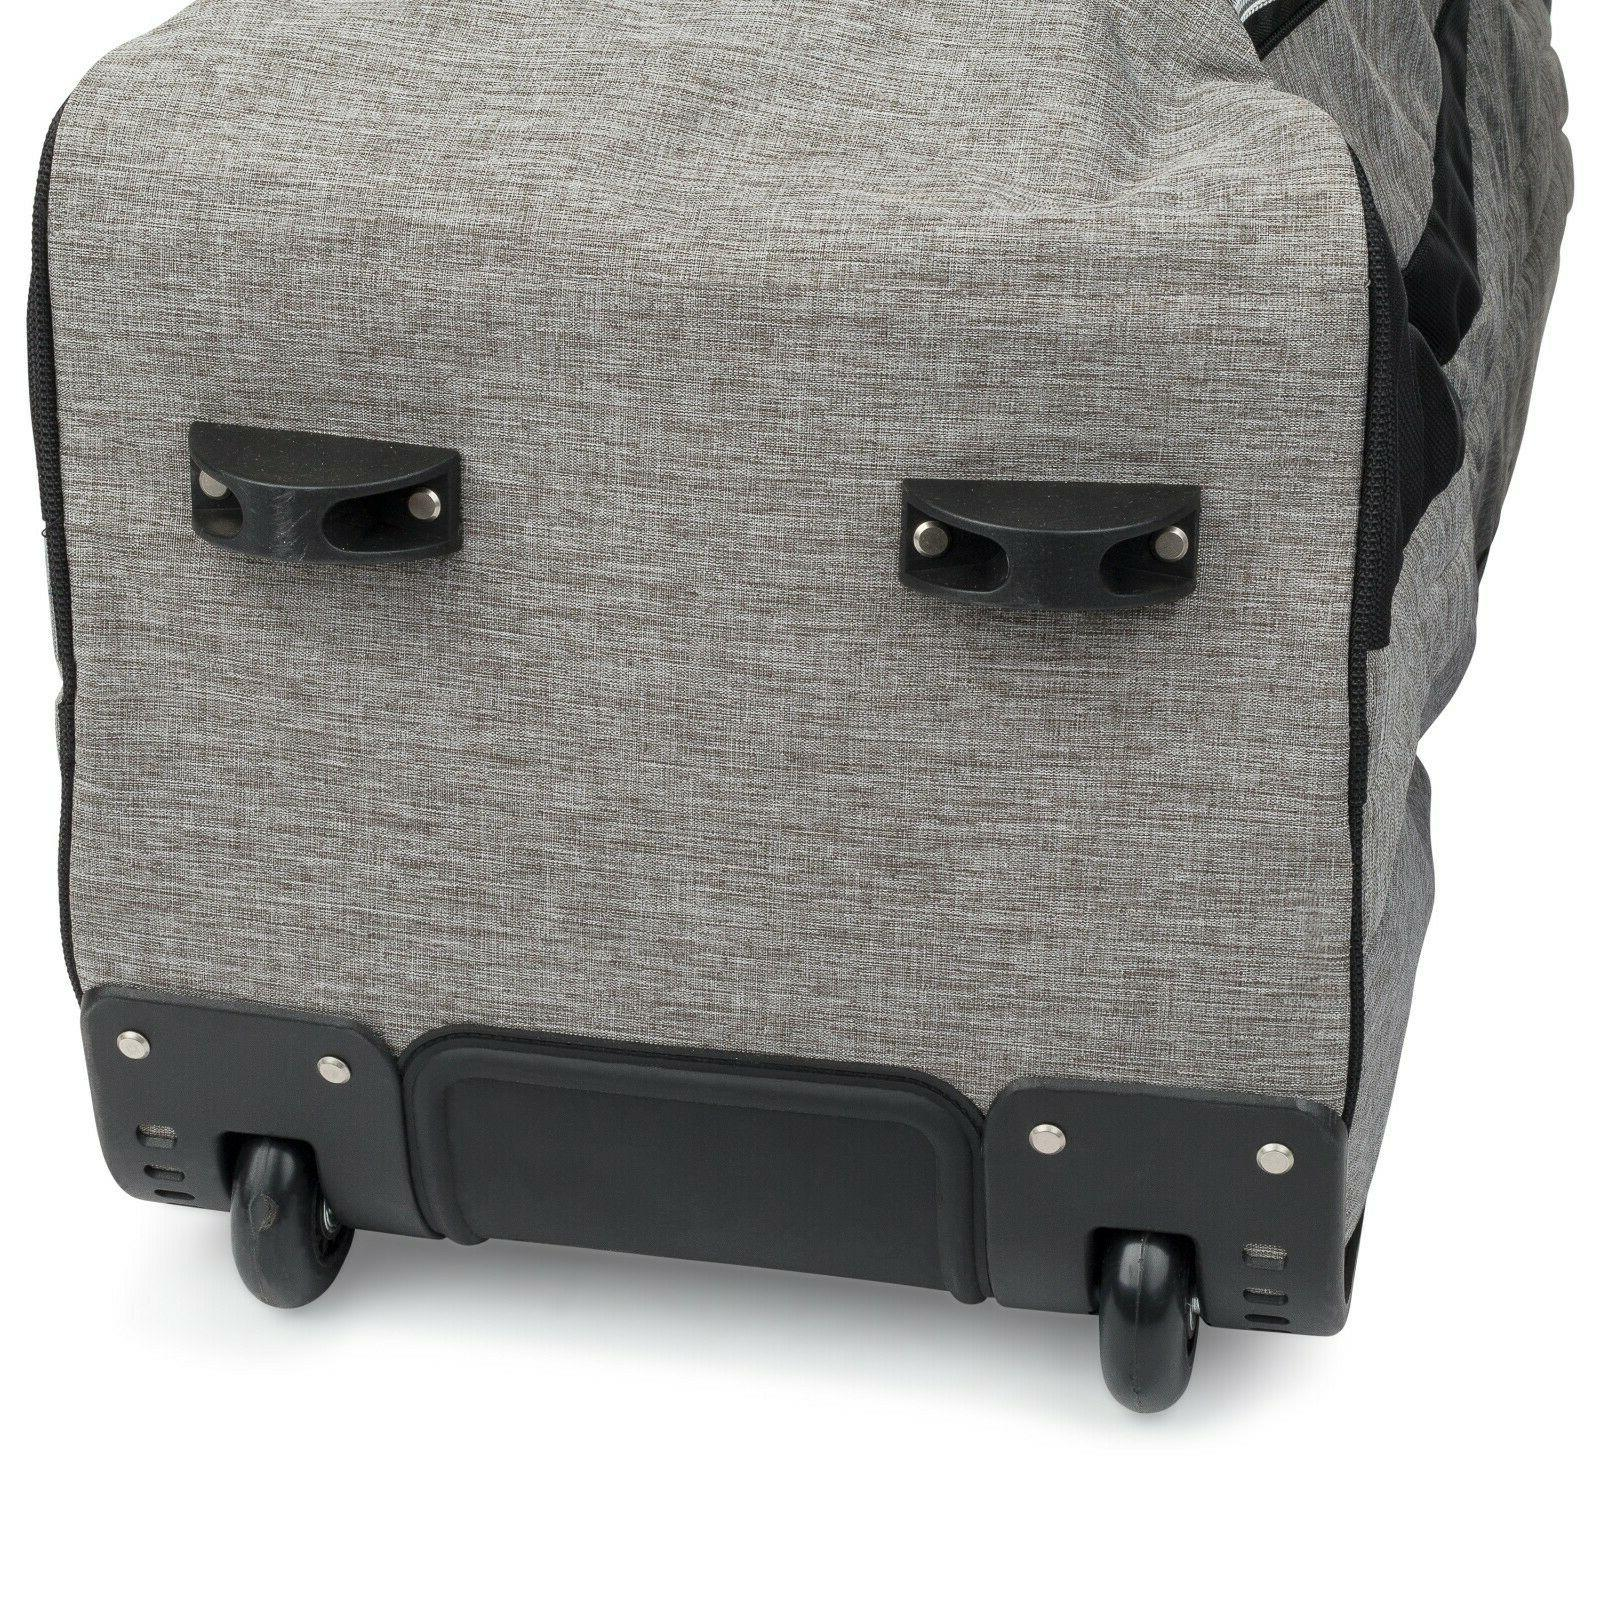 Founders Travel Bag Padded